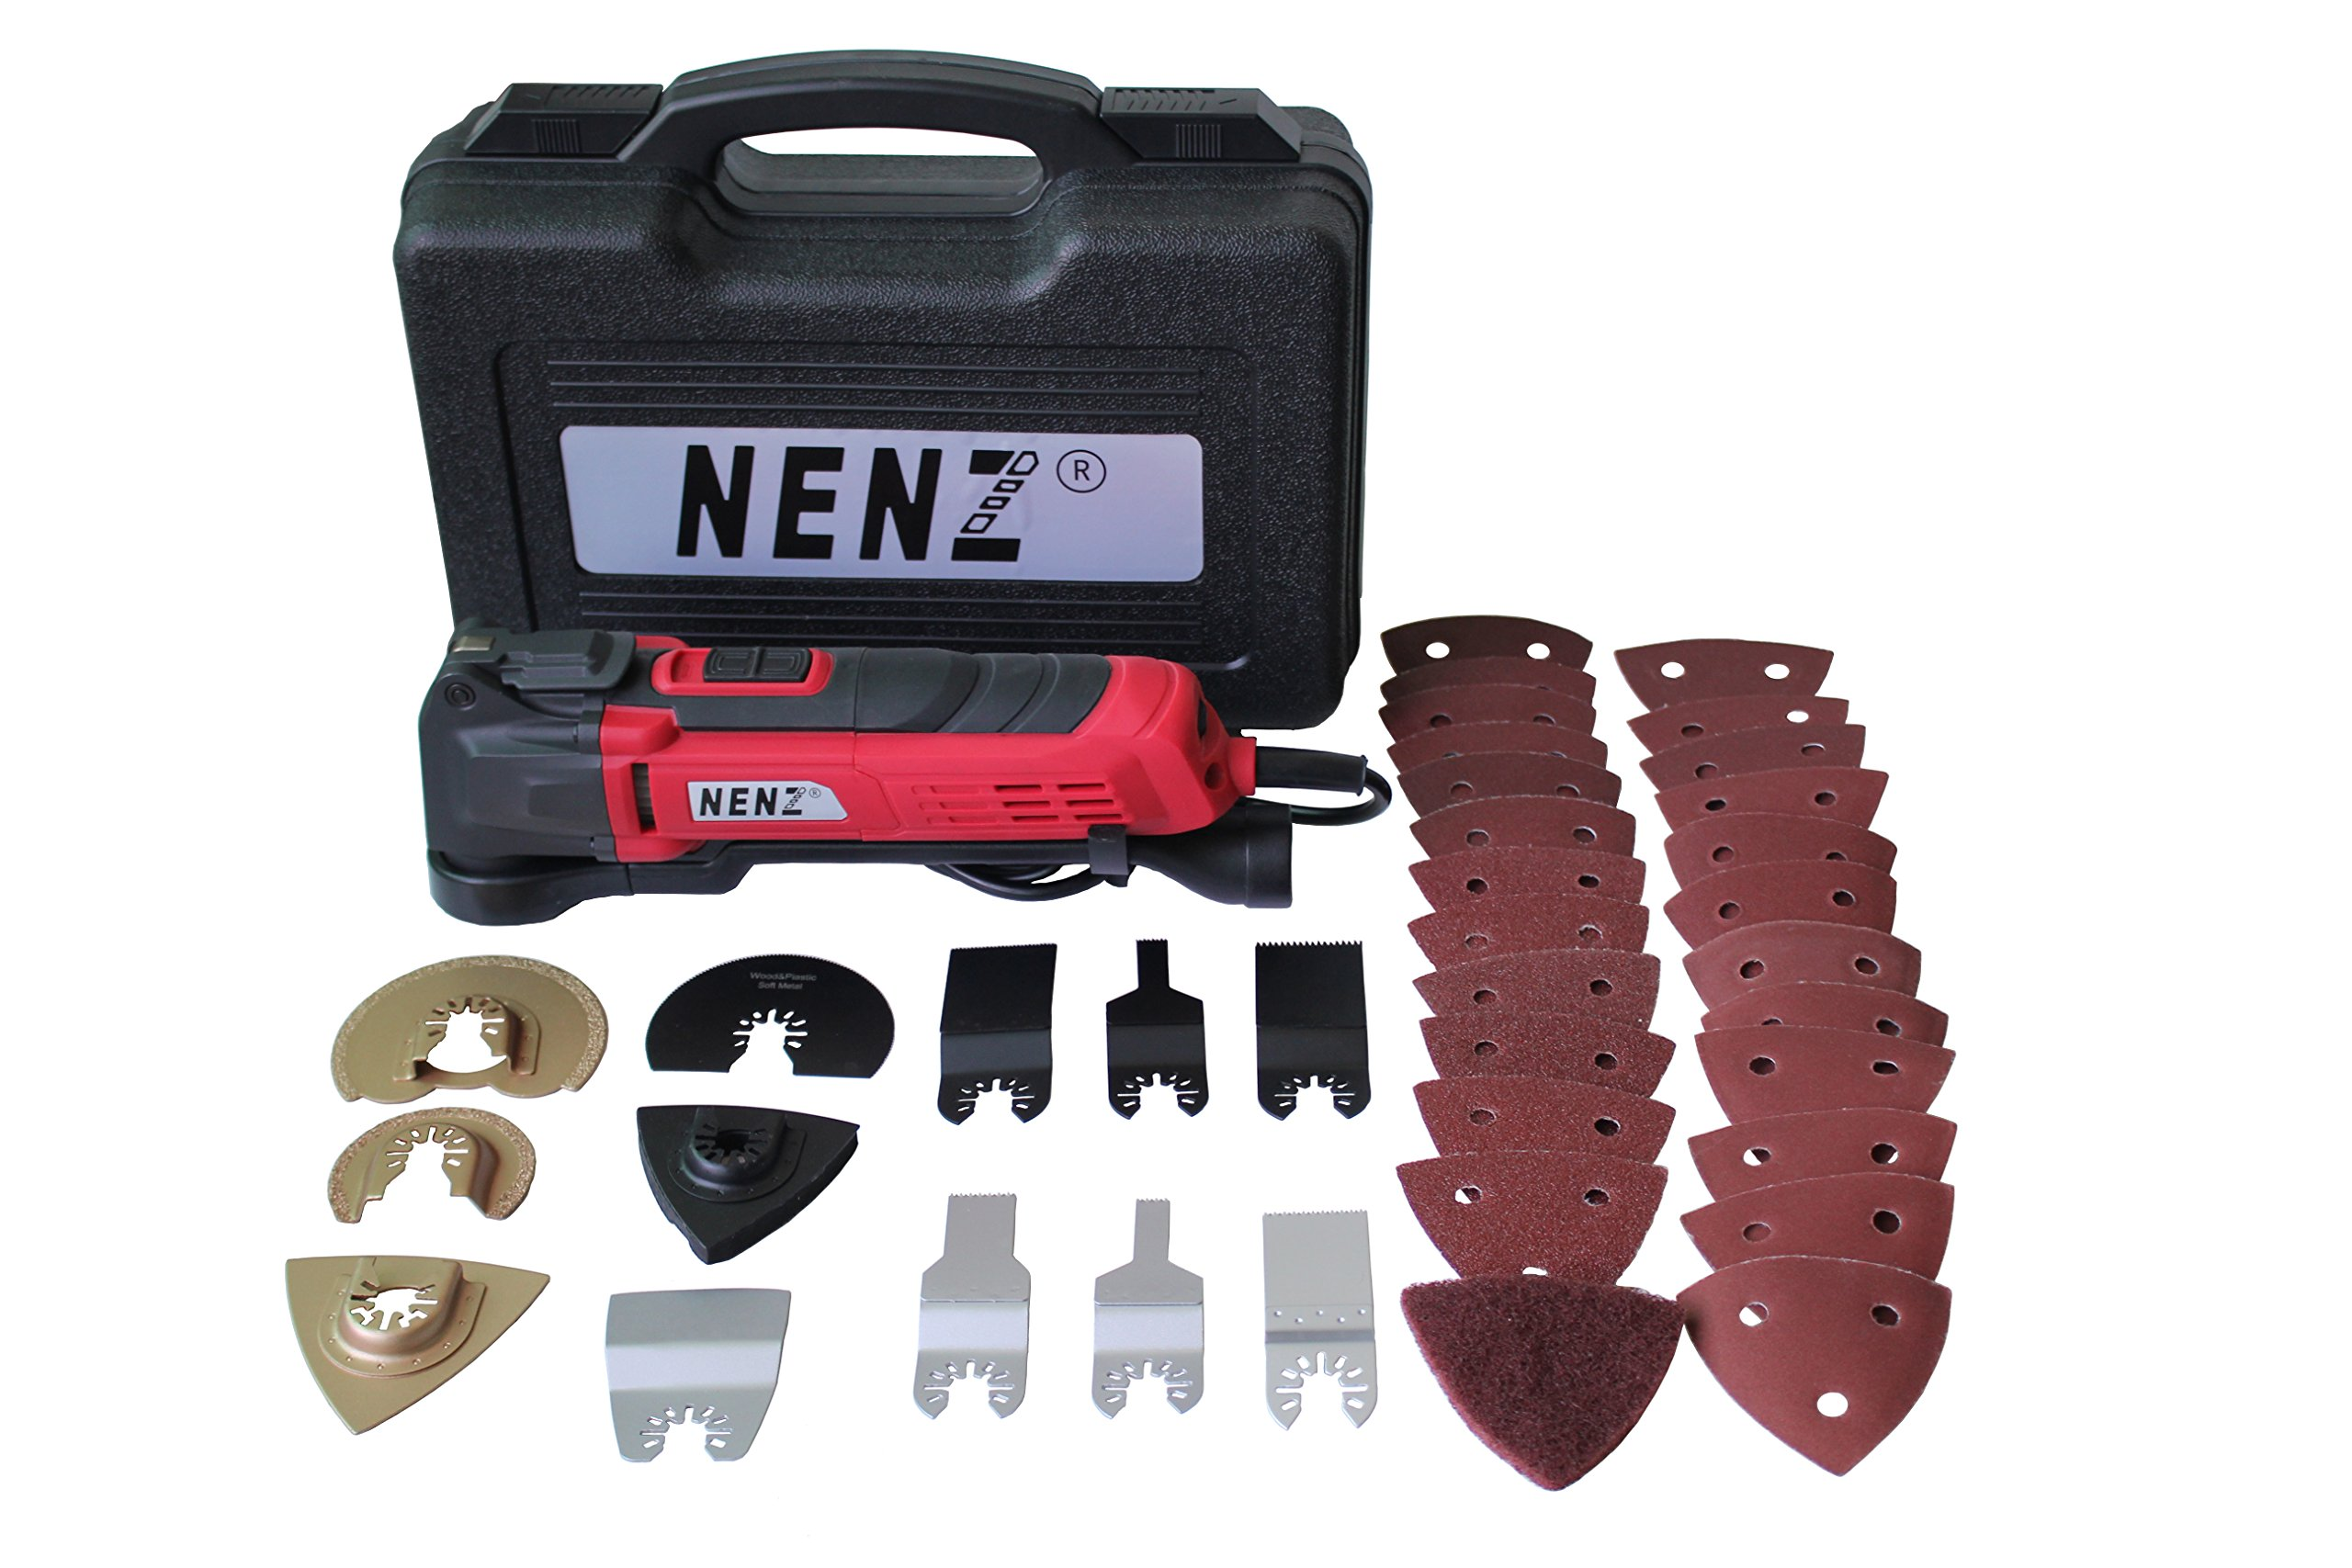 NENZ NZ10-01 AC120V Oscillating Multi-tool Kit with 11 Accessories